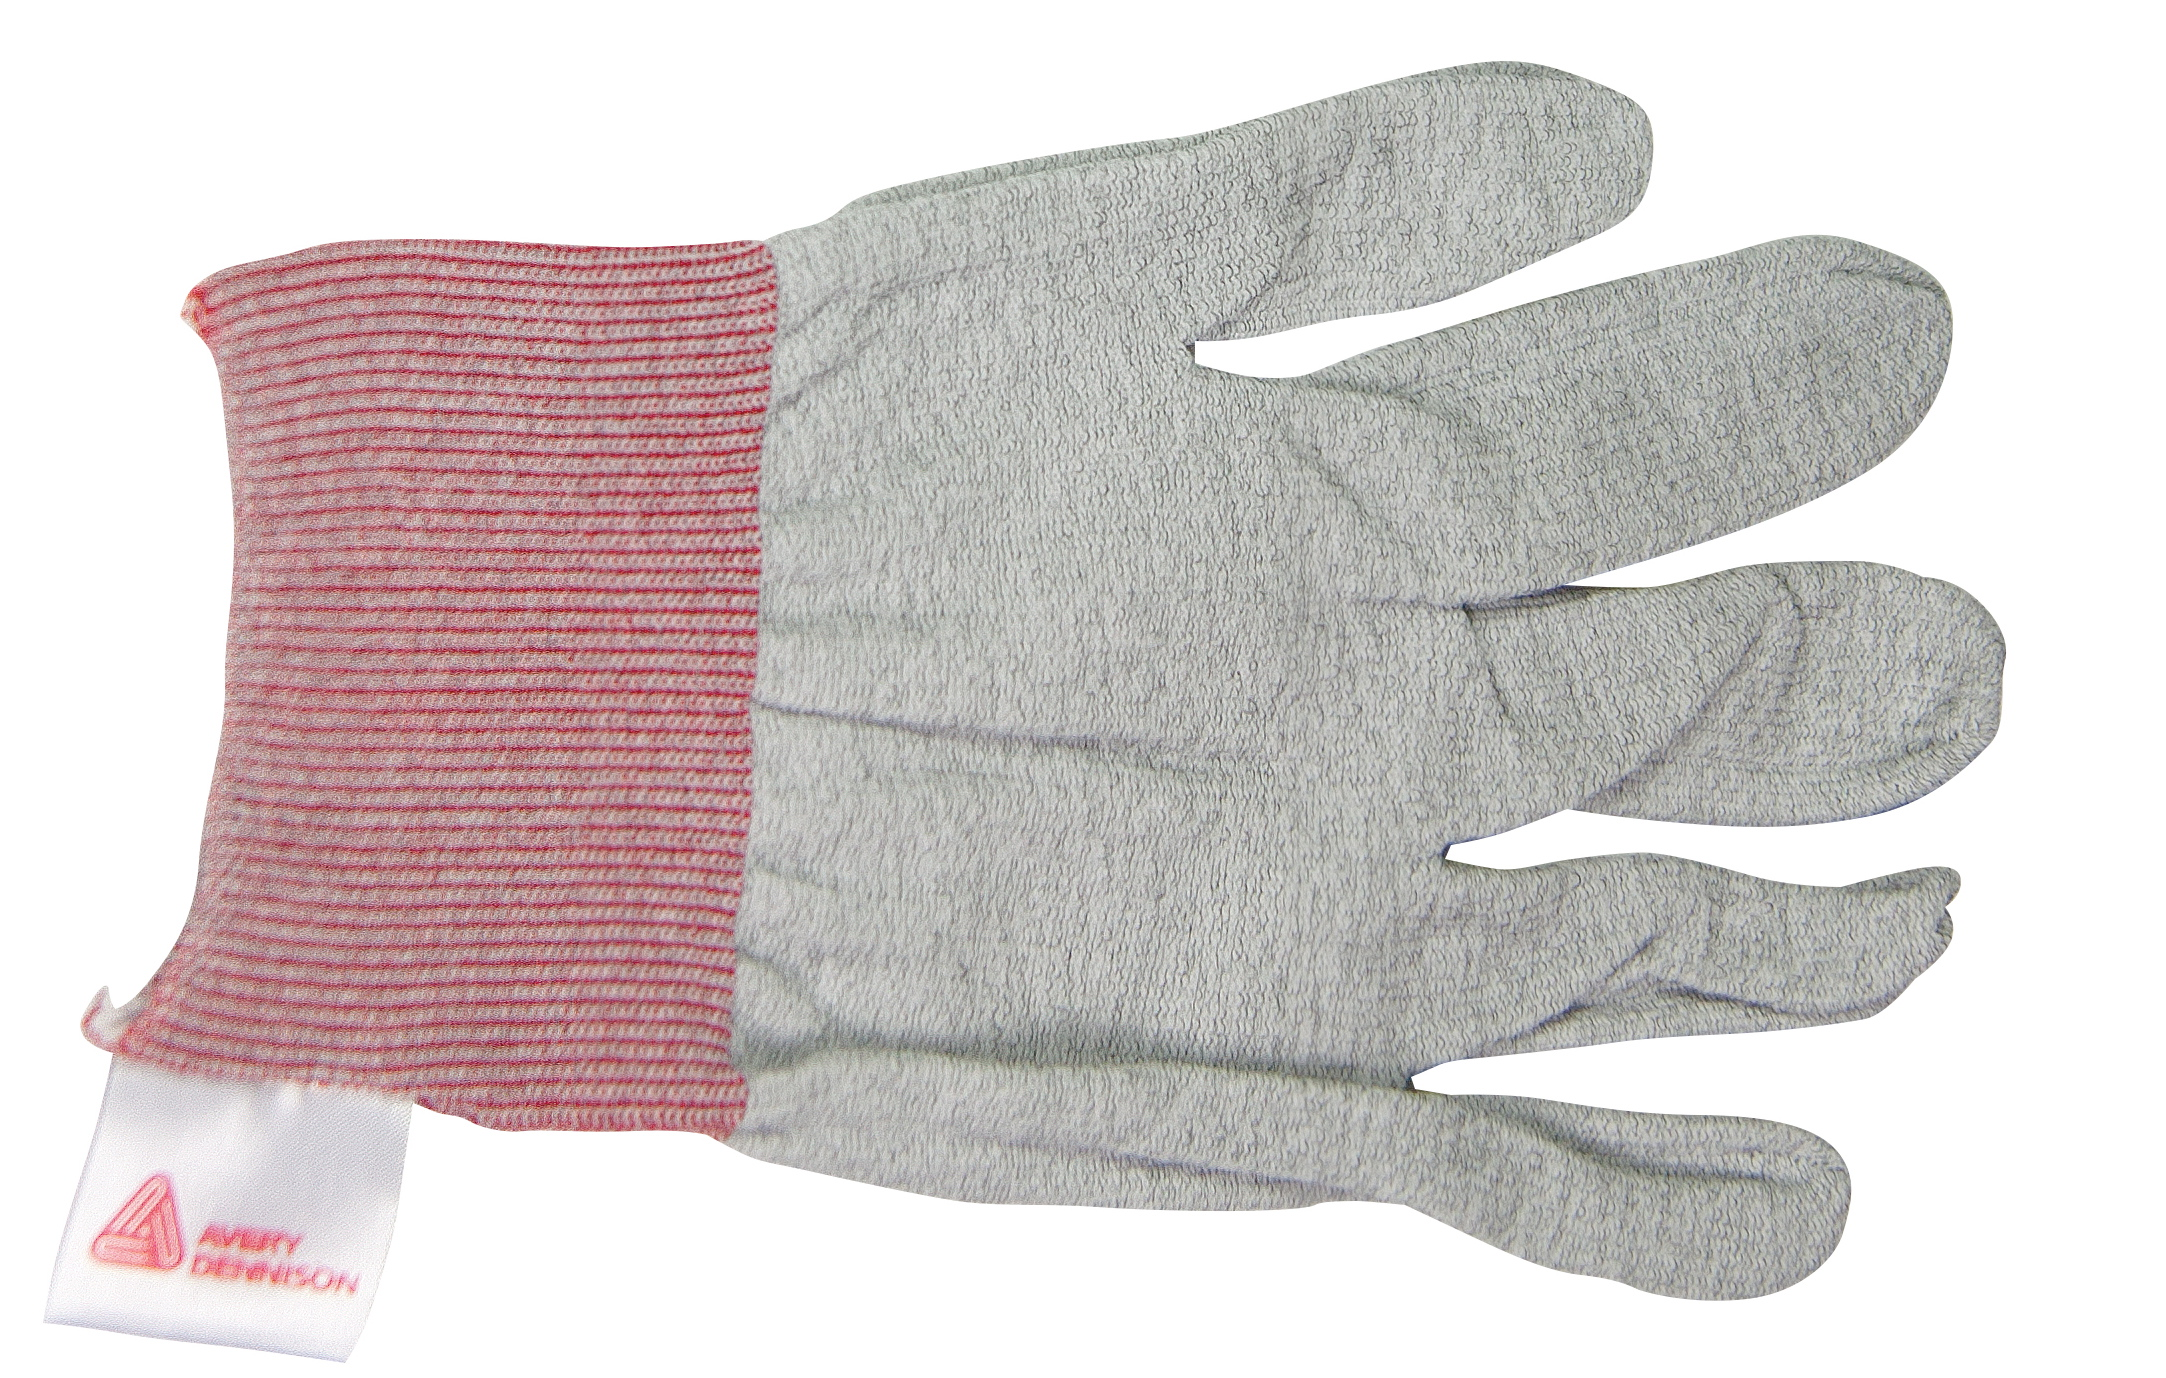 Avery Wrap Glove